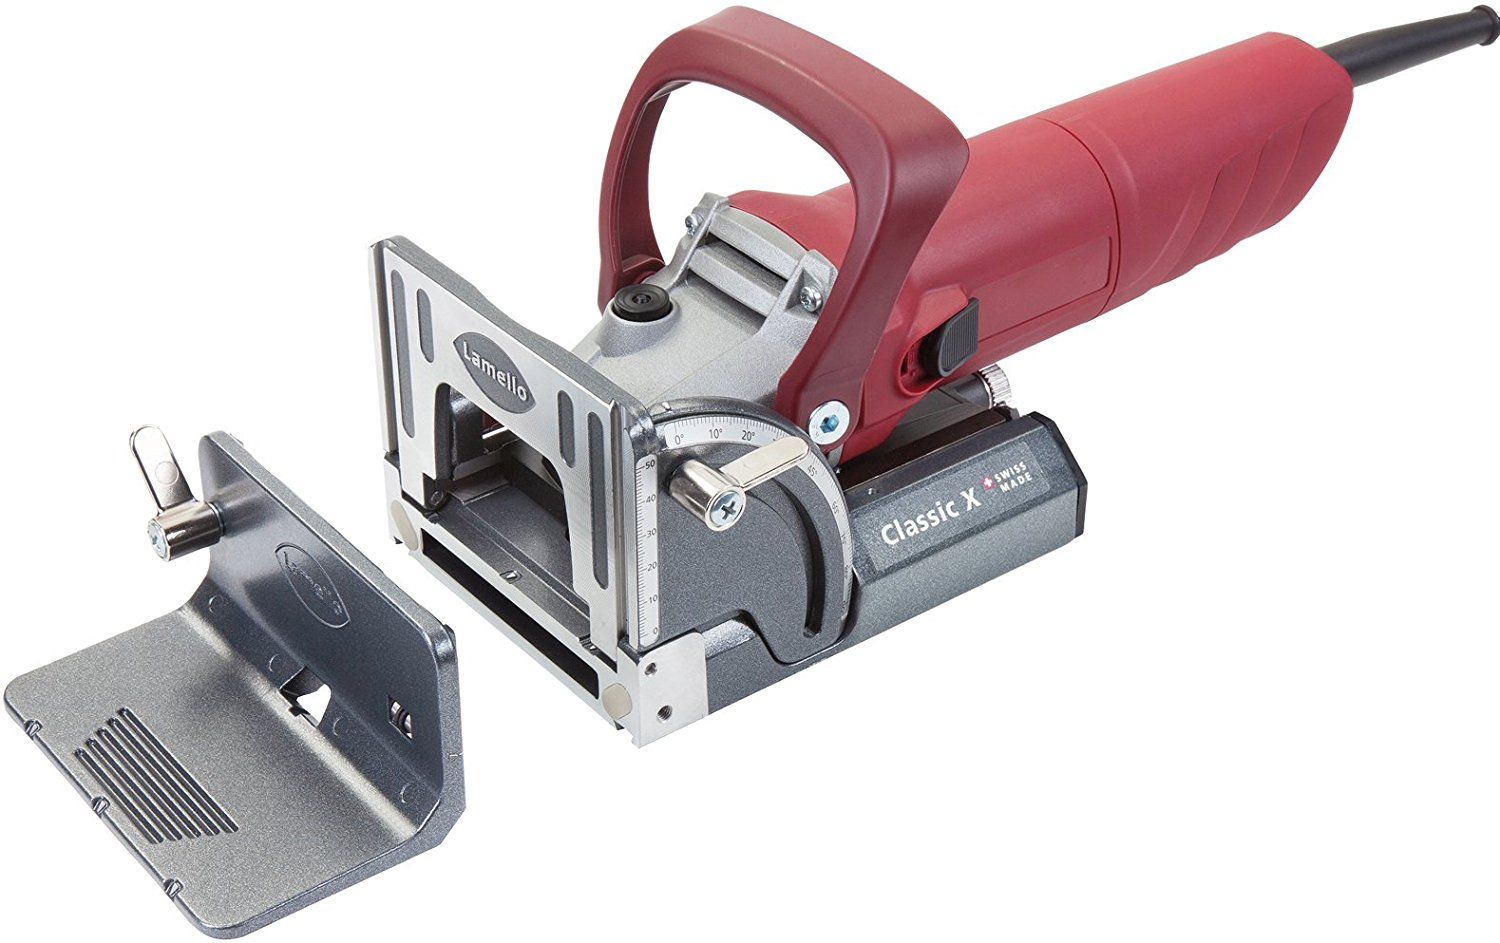 best biscuit joiner – reviews and buying guide 2019 – tools